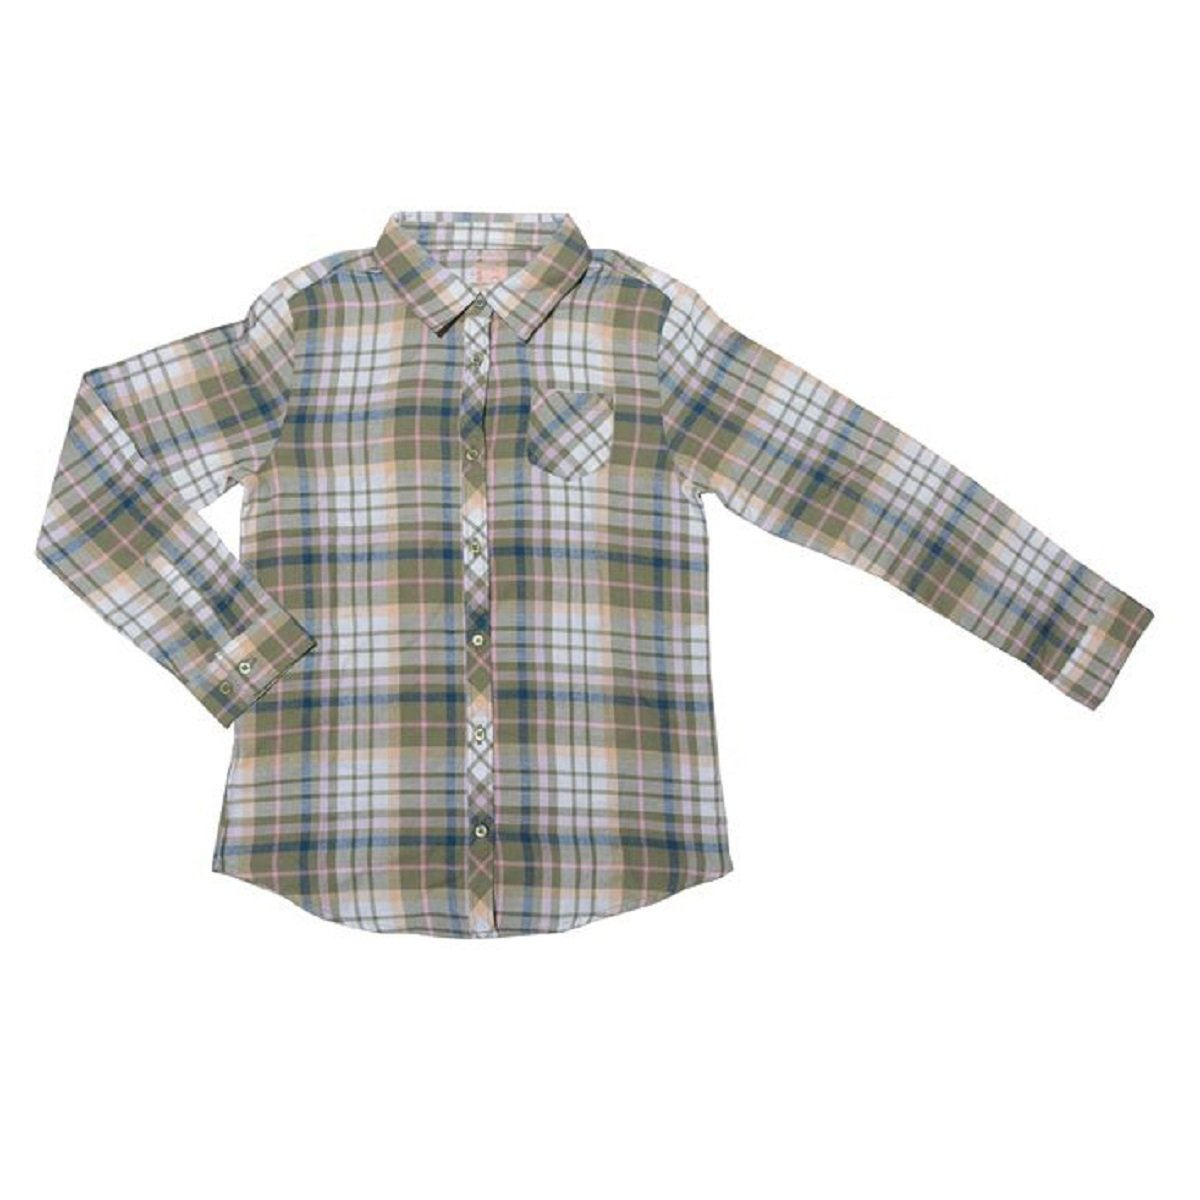 Faded Glory Girls Flannel Button Down Shirt